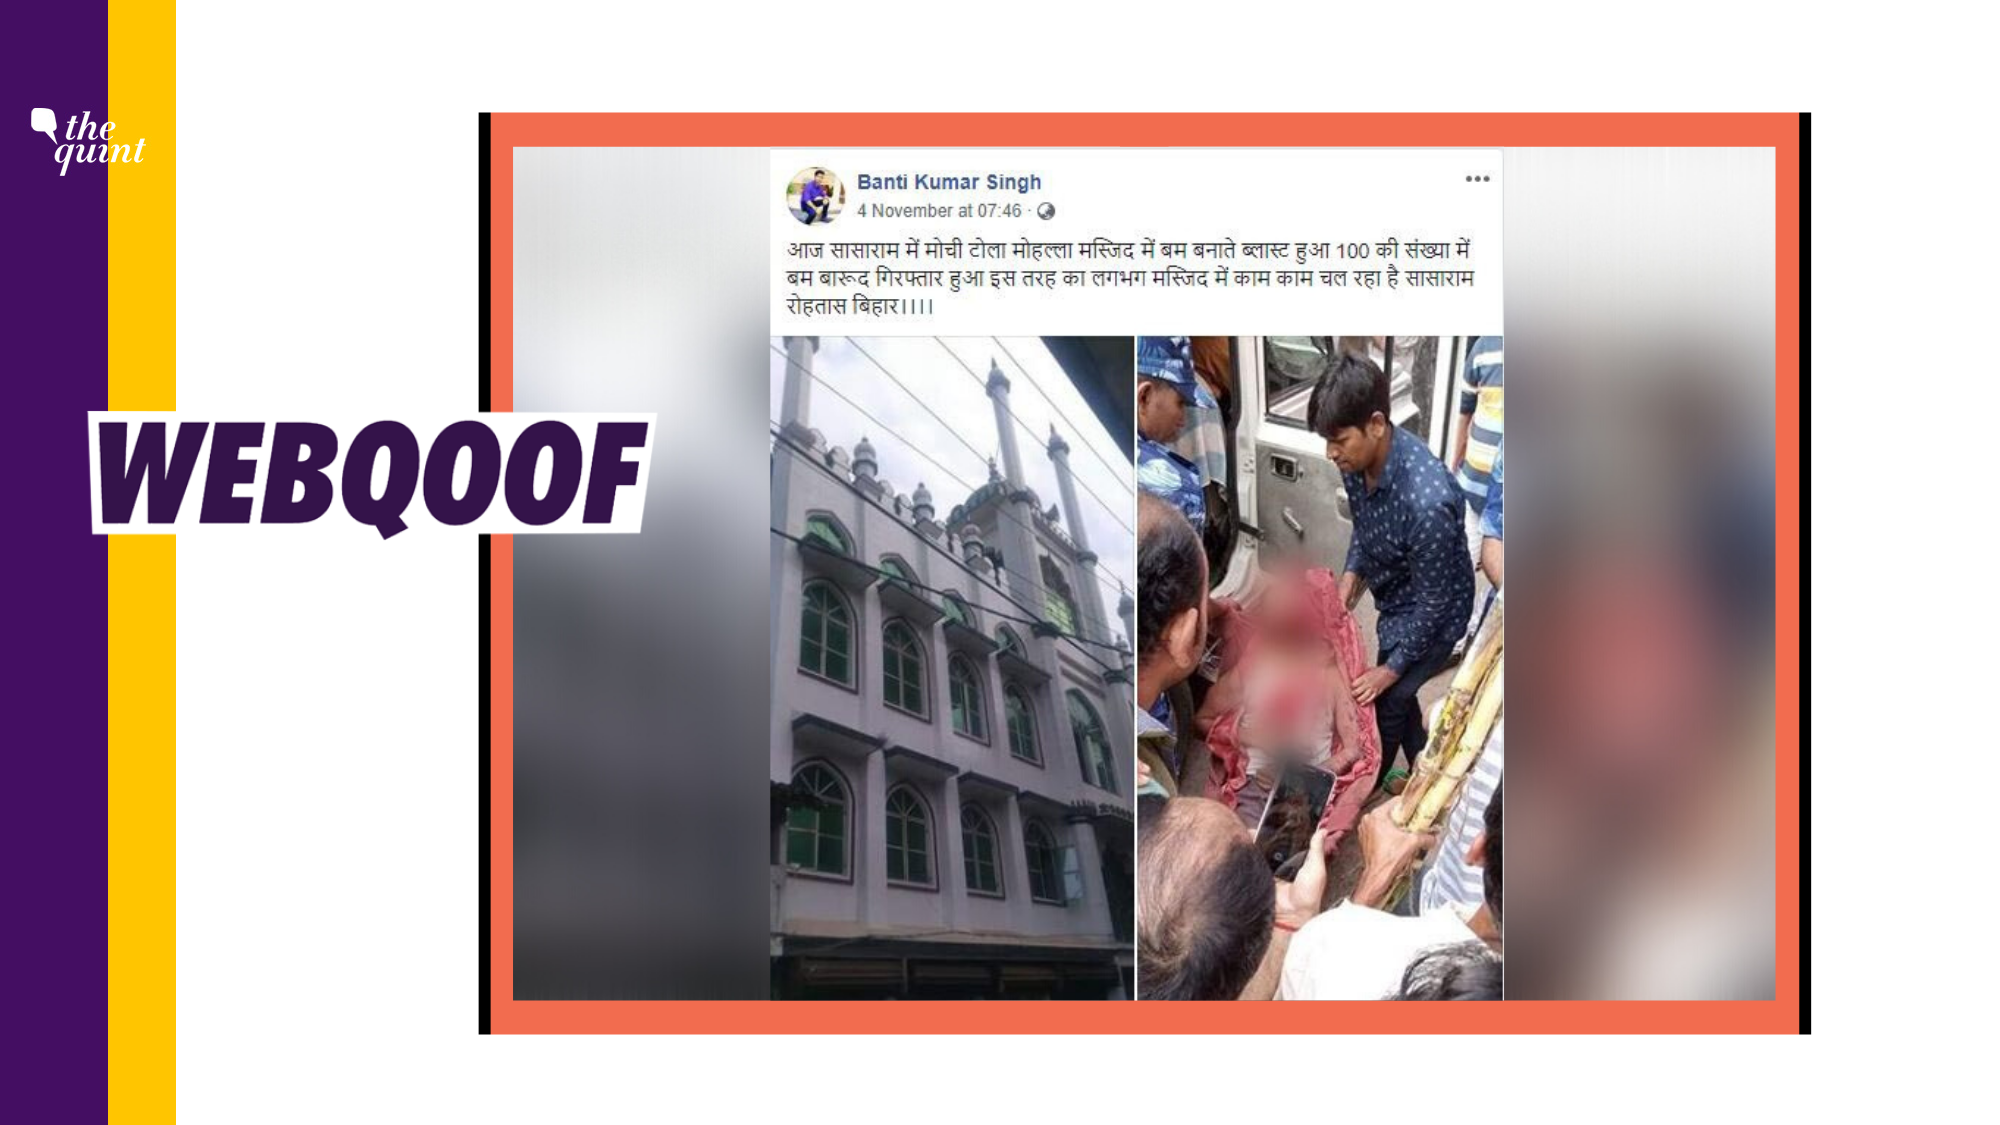 100 Bombs Found After Blast Inside Mosque in Bihar? It's Fake News